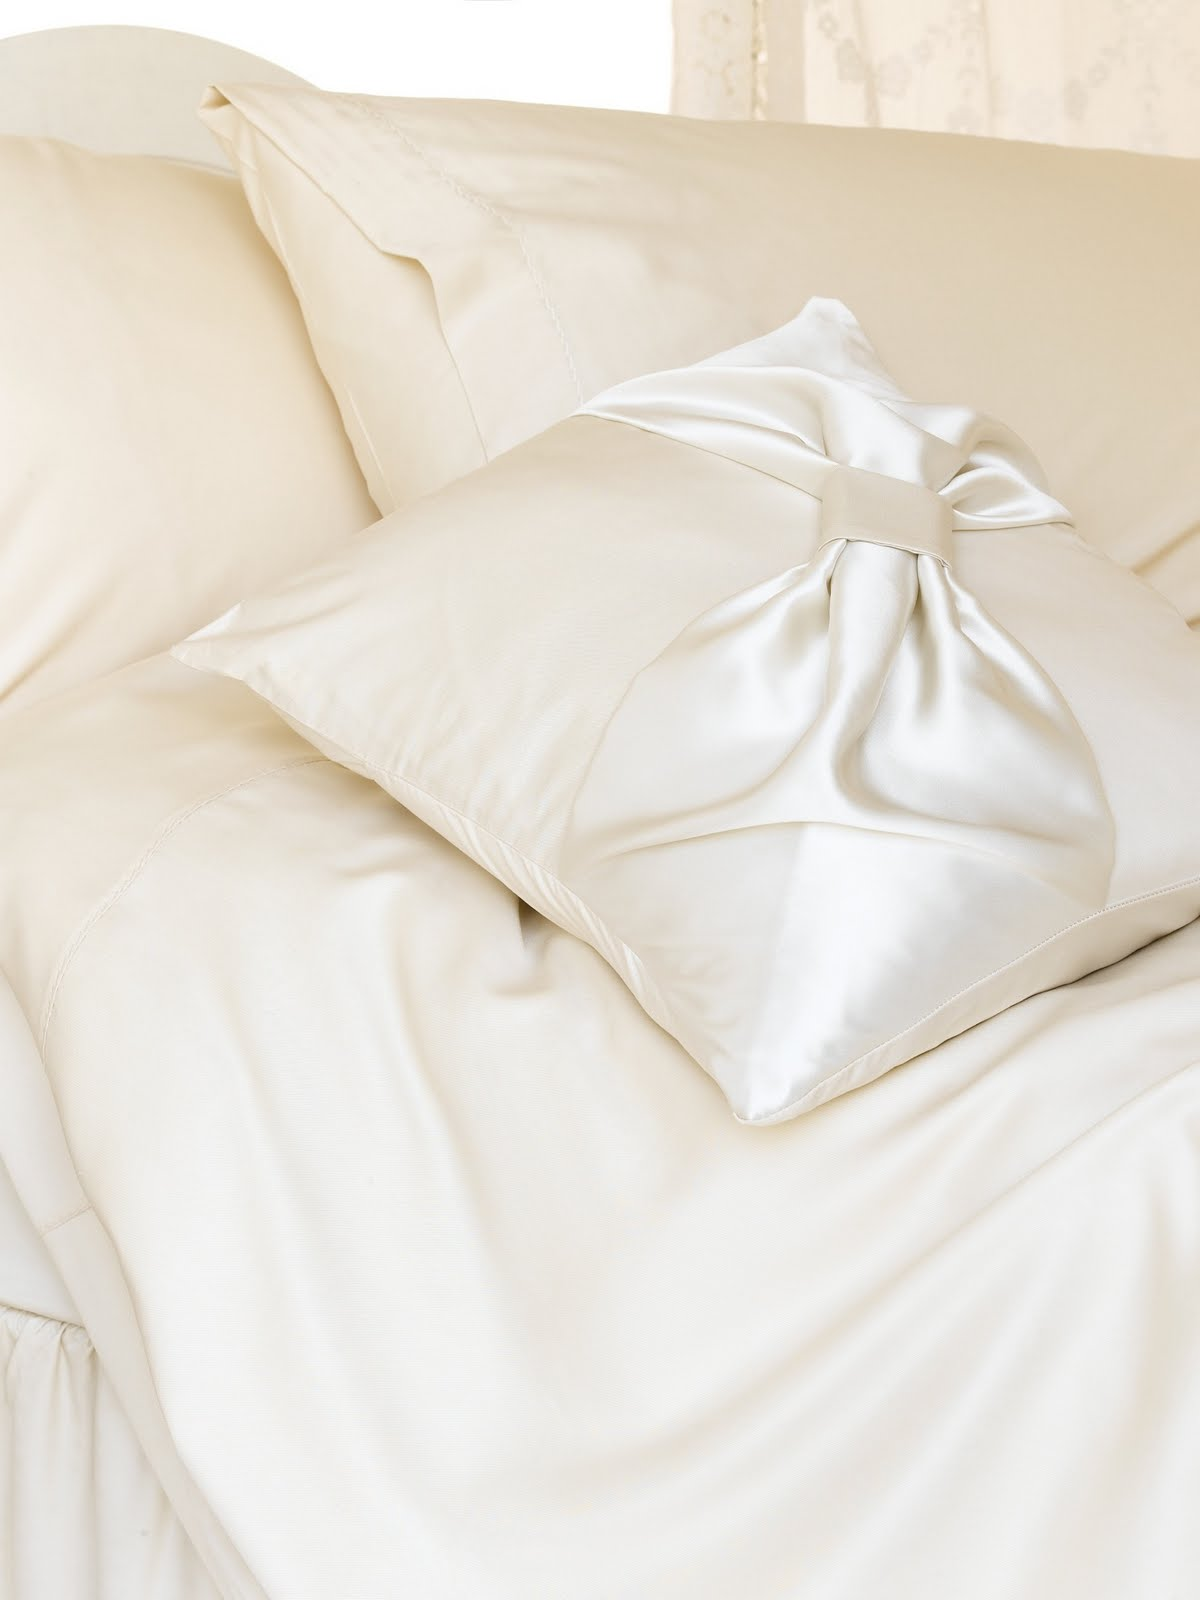 Bed sheet wallpaper free neo wallpapers for Wallpaper sheets